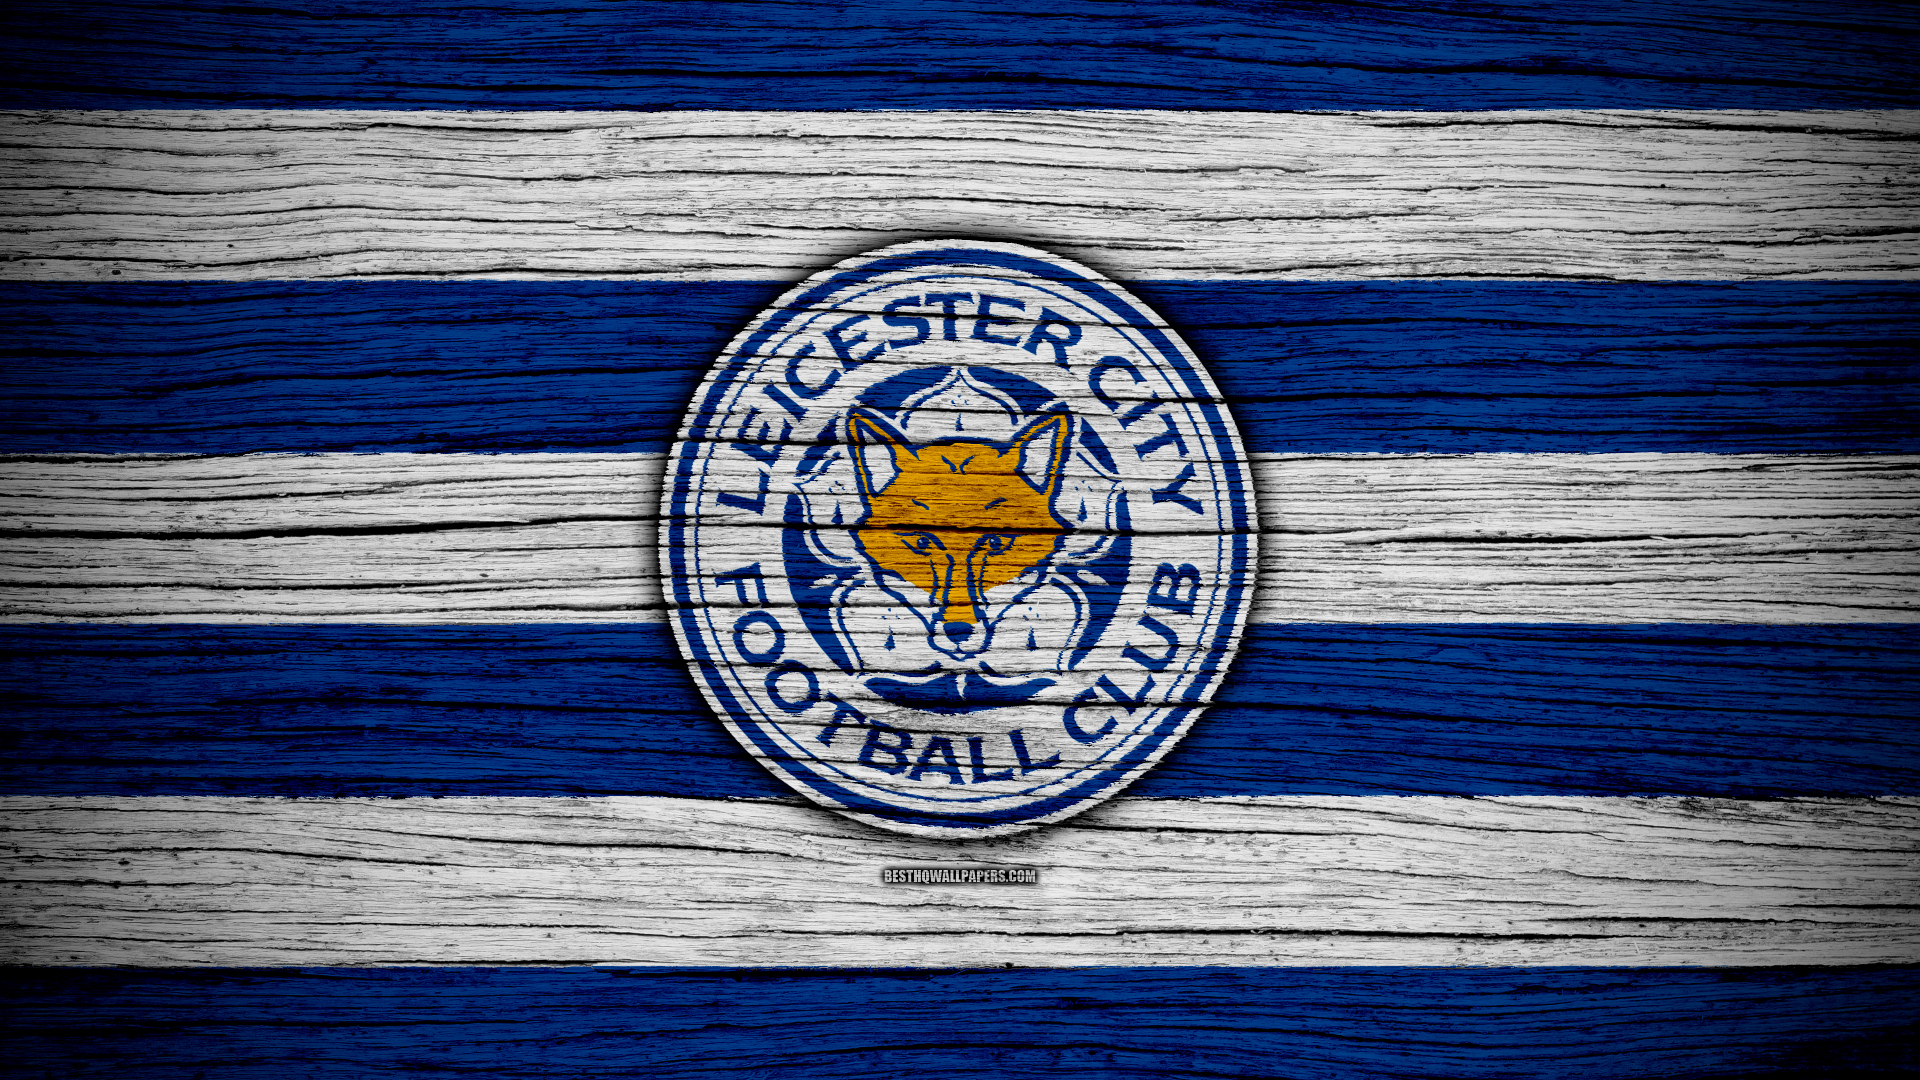 Free download Download wallpapers Leicester City 4k ...